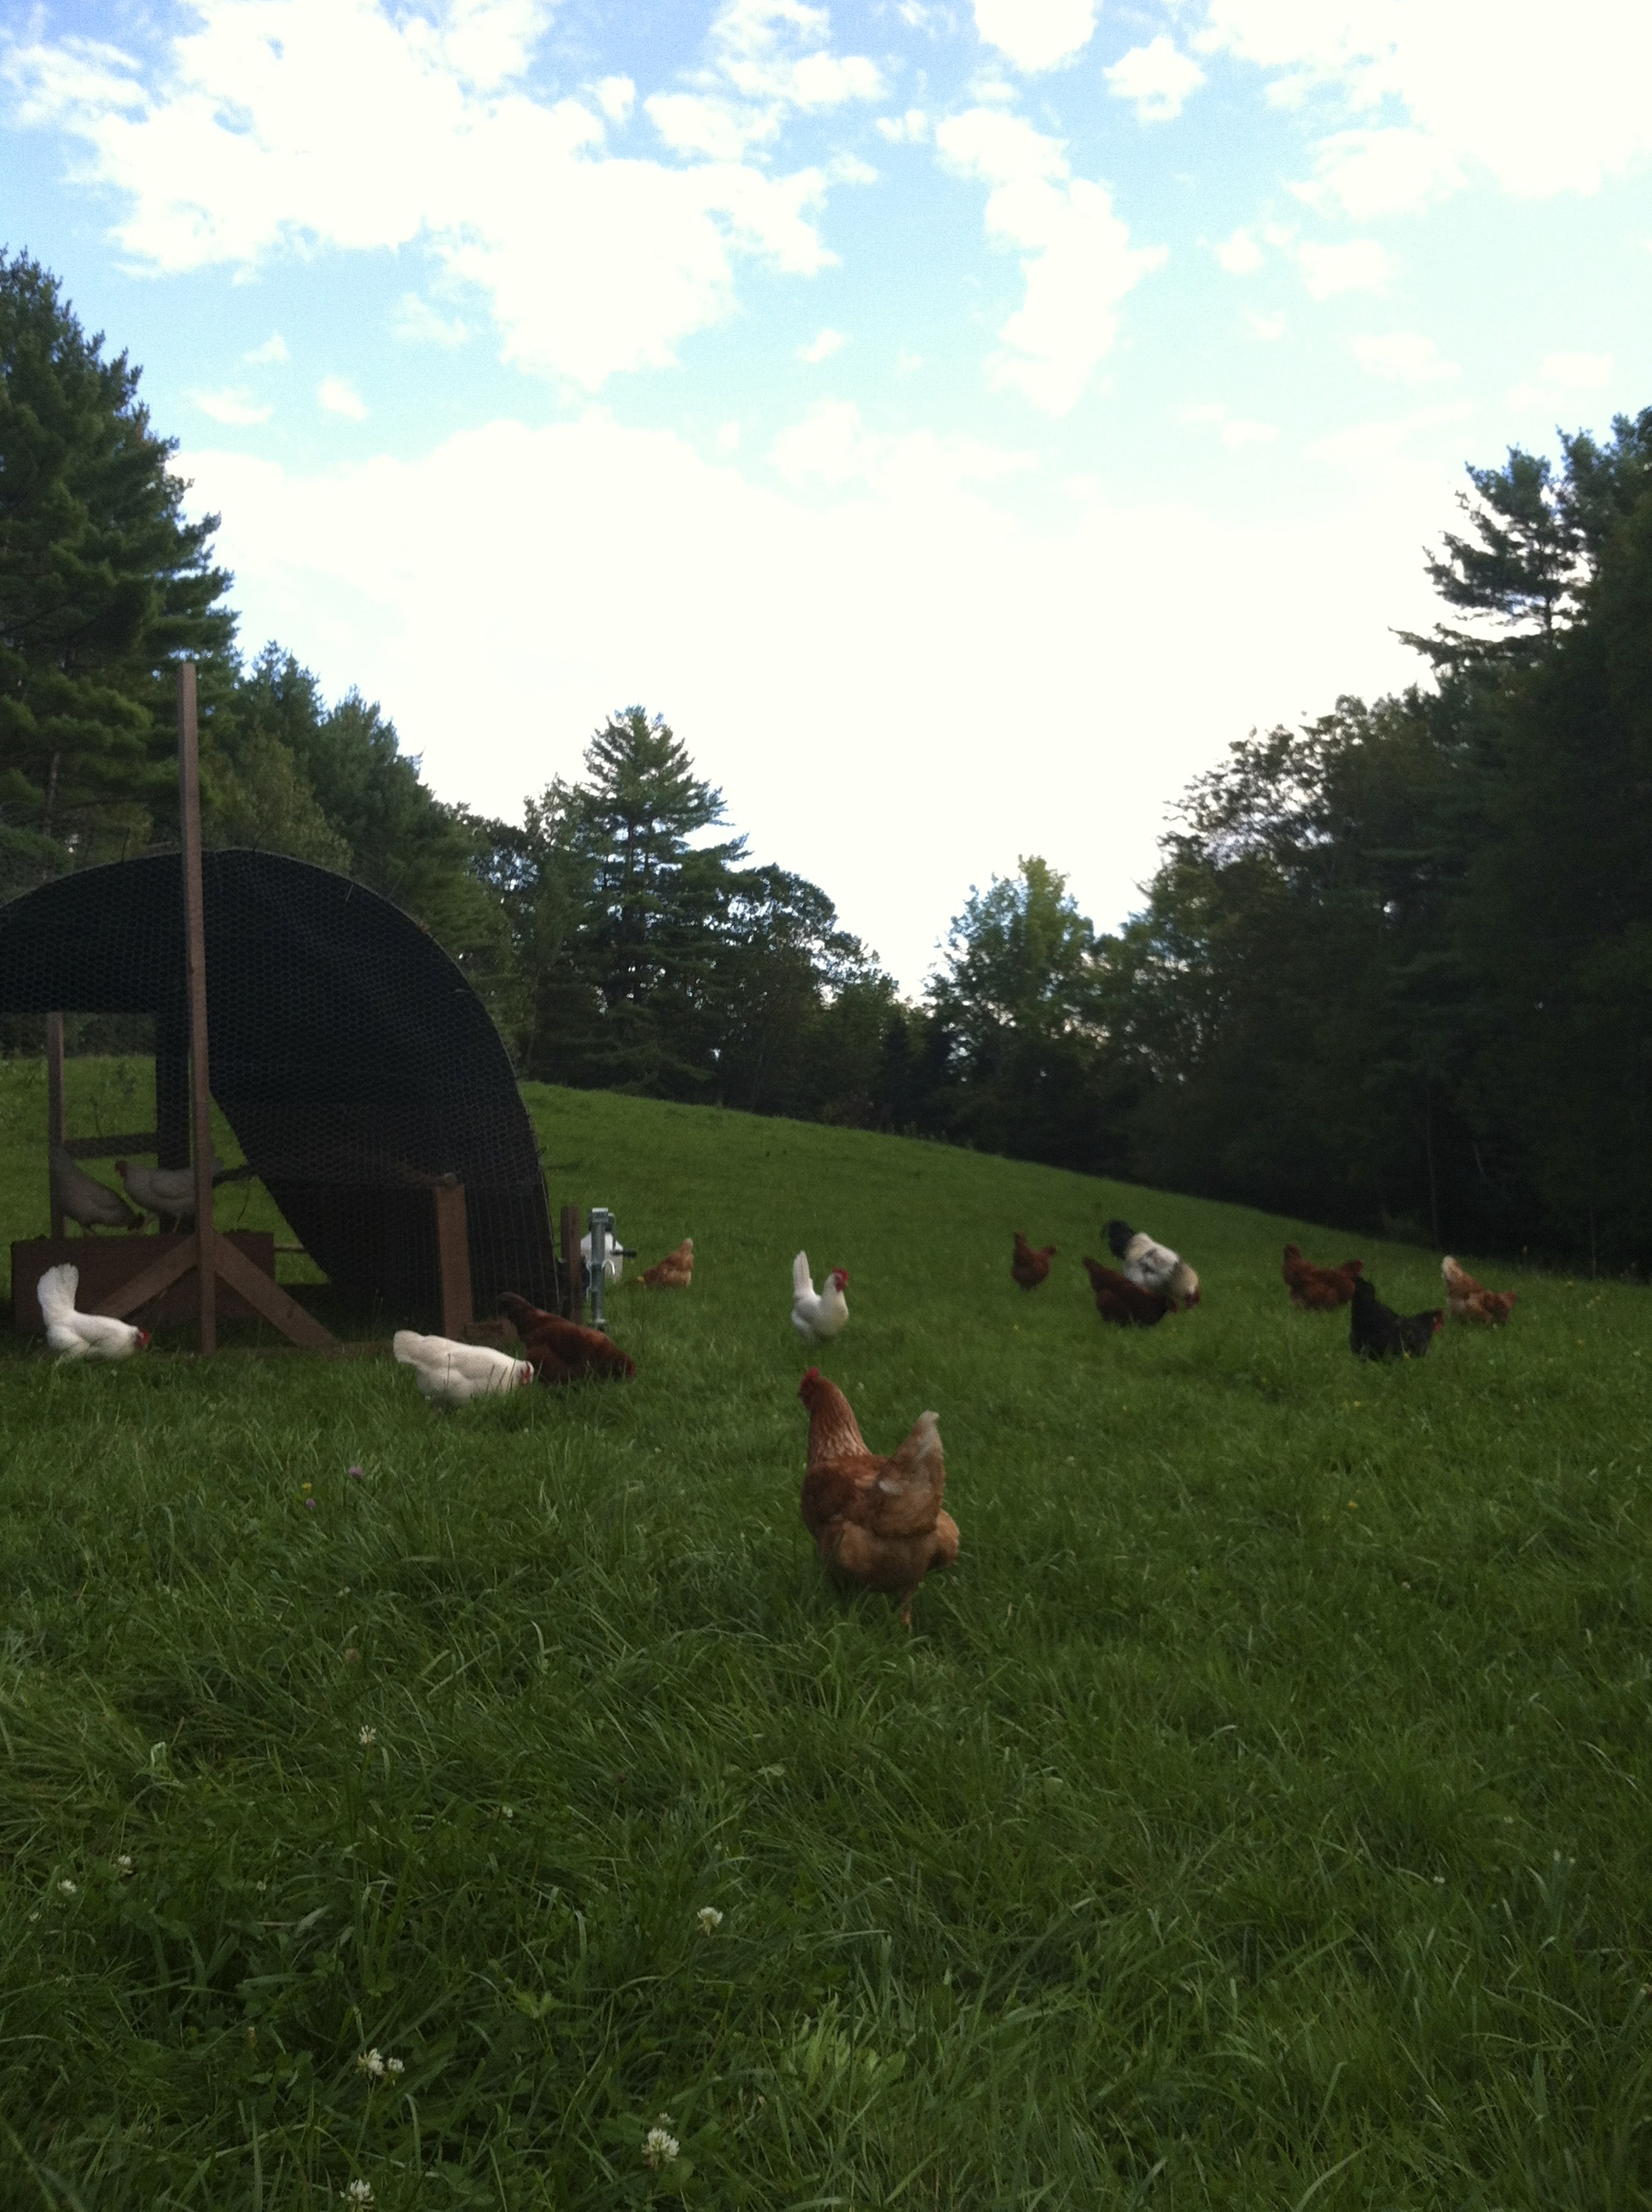 Last photo of the chickens on pasture.